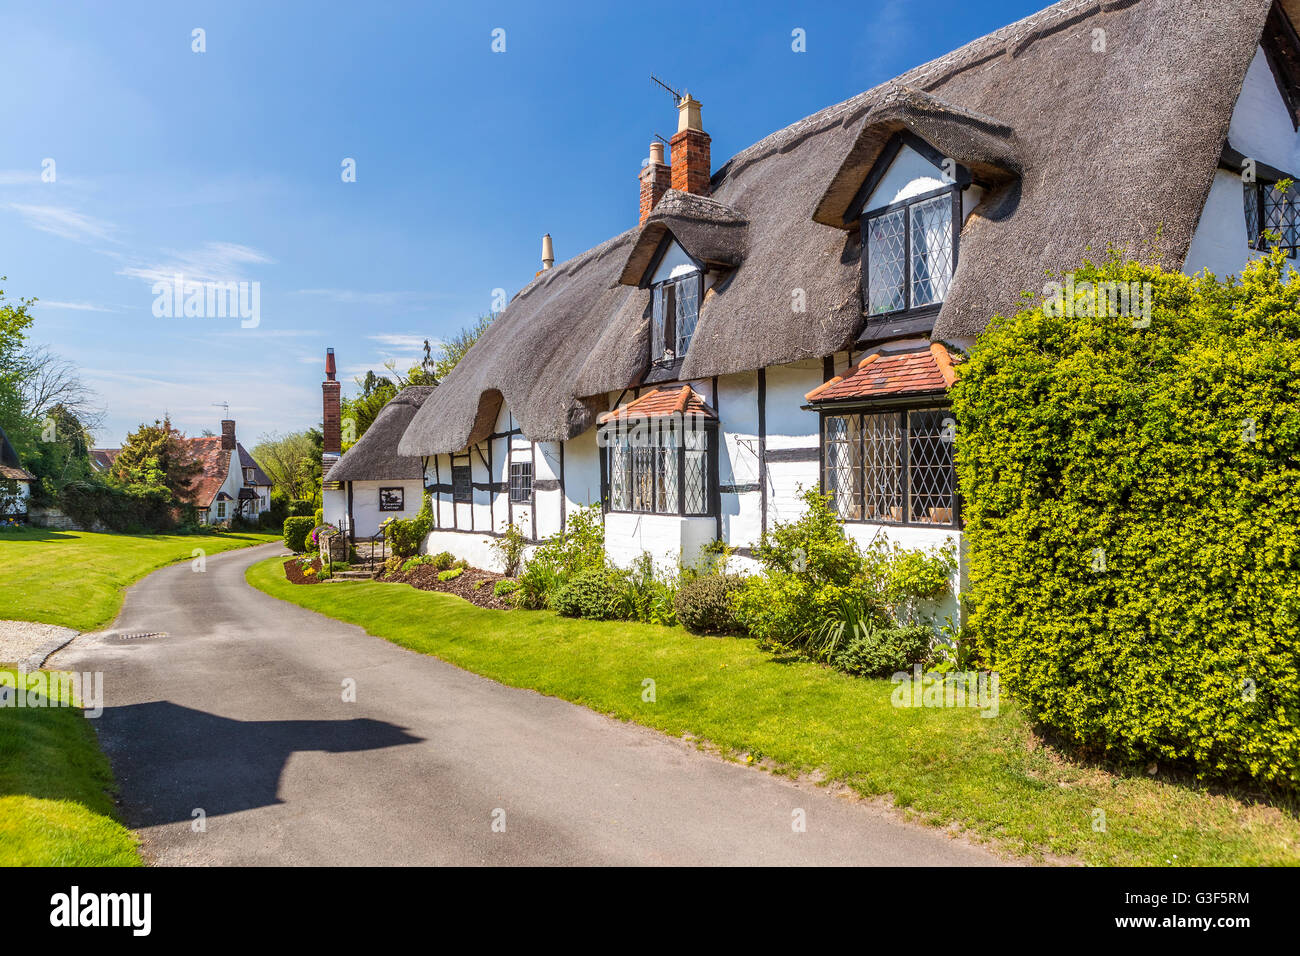 Thatched Cottages at Welford-on-Avon, Warwickshire, England, United Kingdom, Europe. - Stock Image